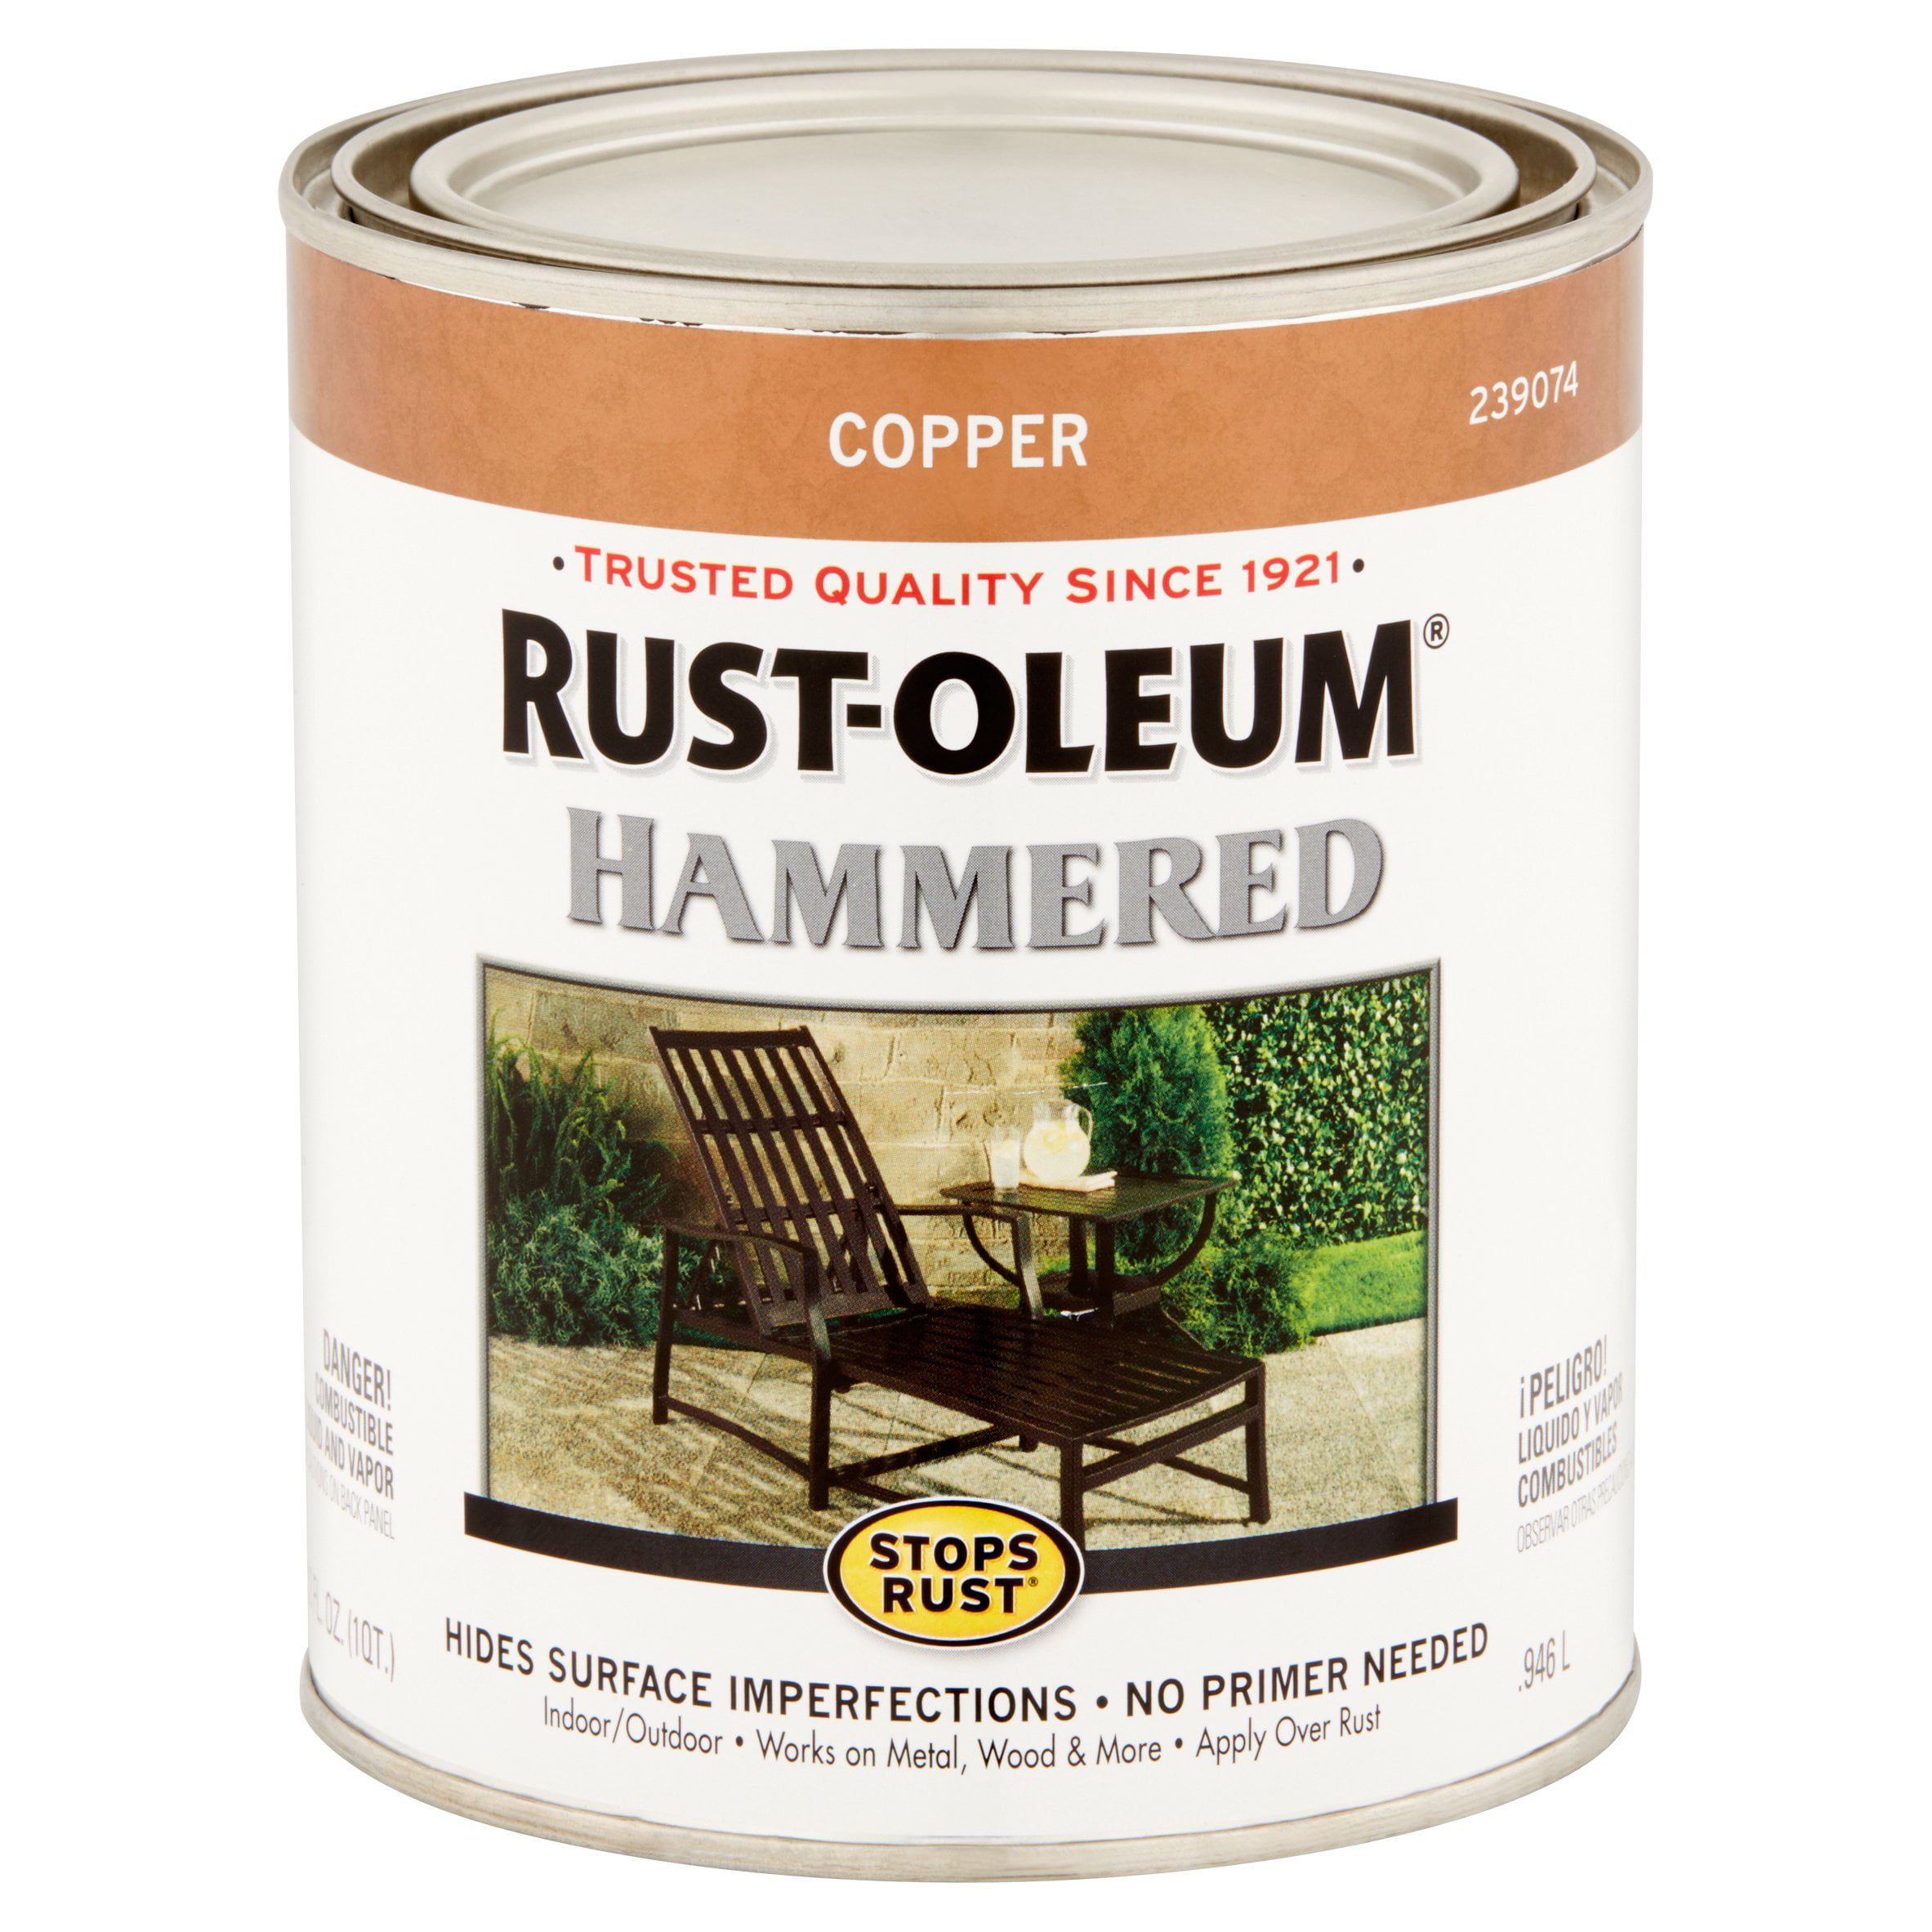 Rust Oleum Stops Rust Copper Hammered Paint 32 Fl Oz